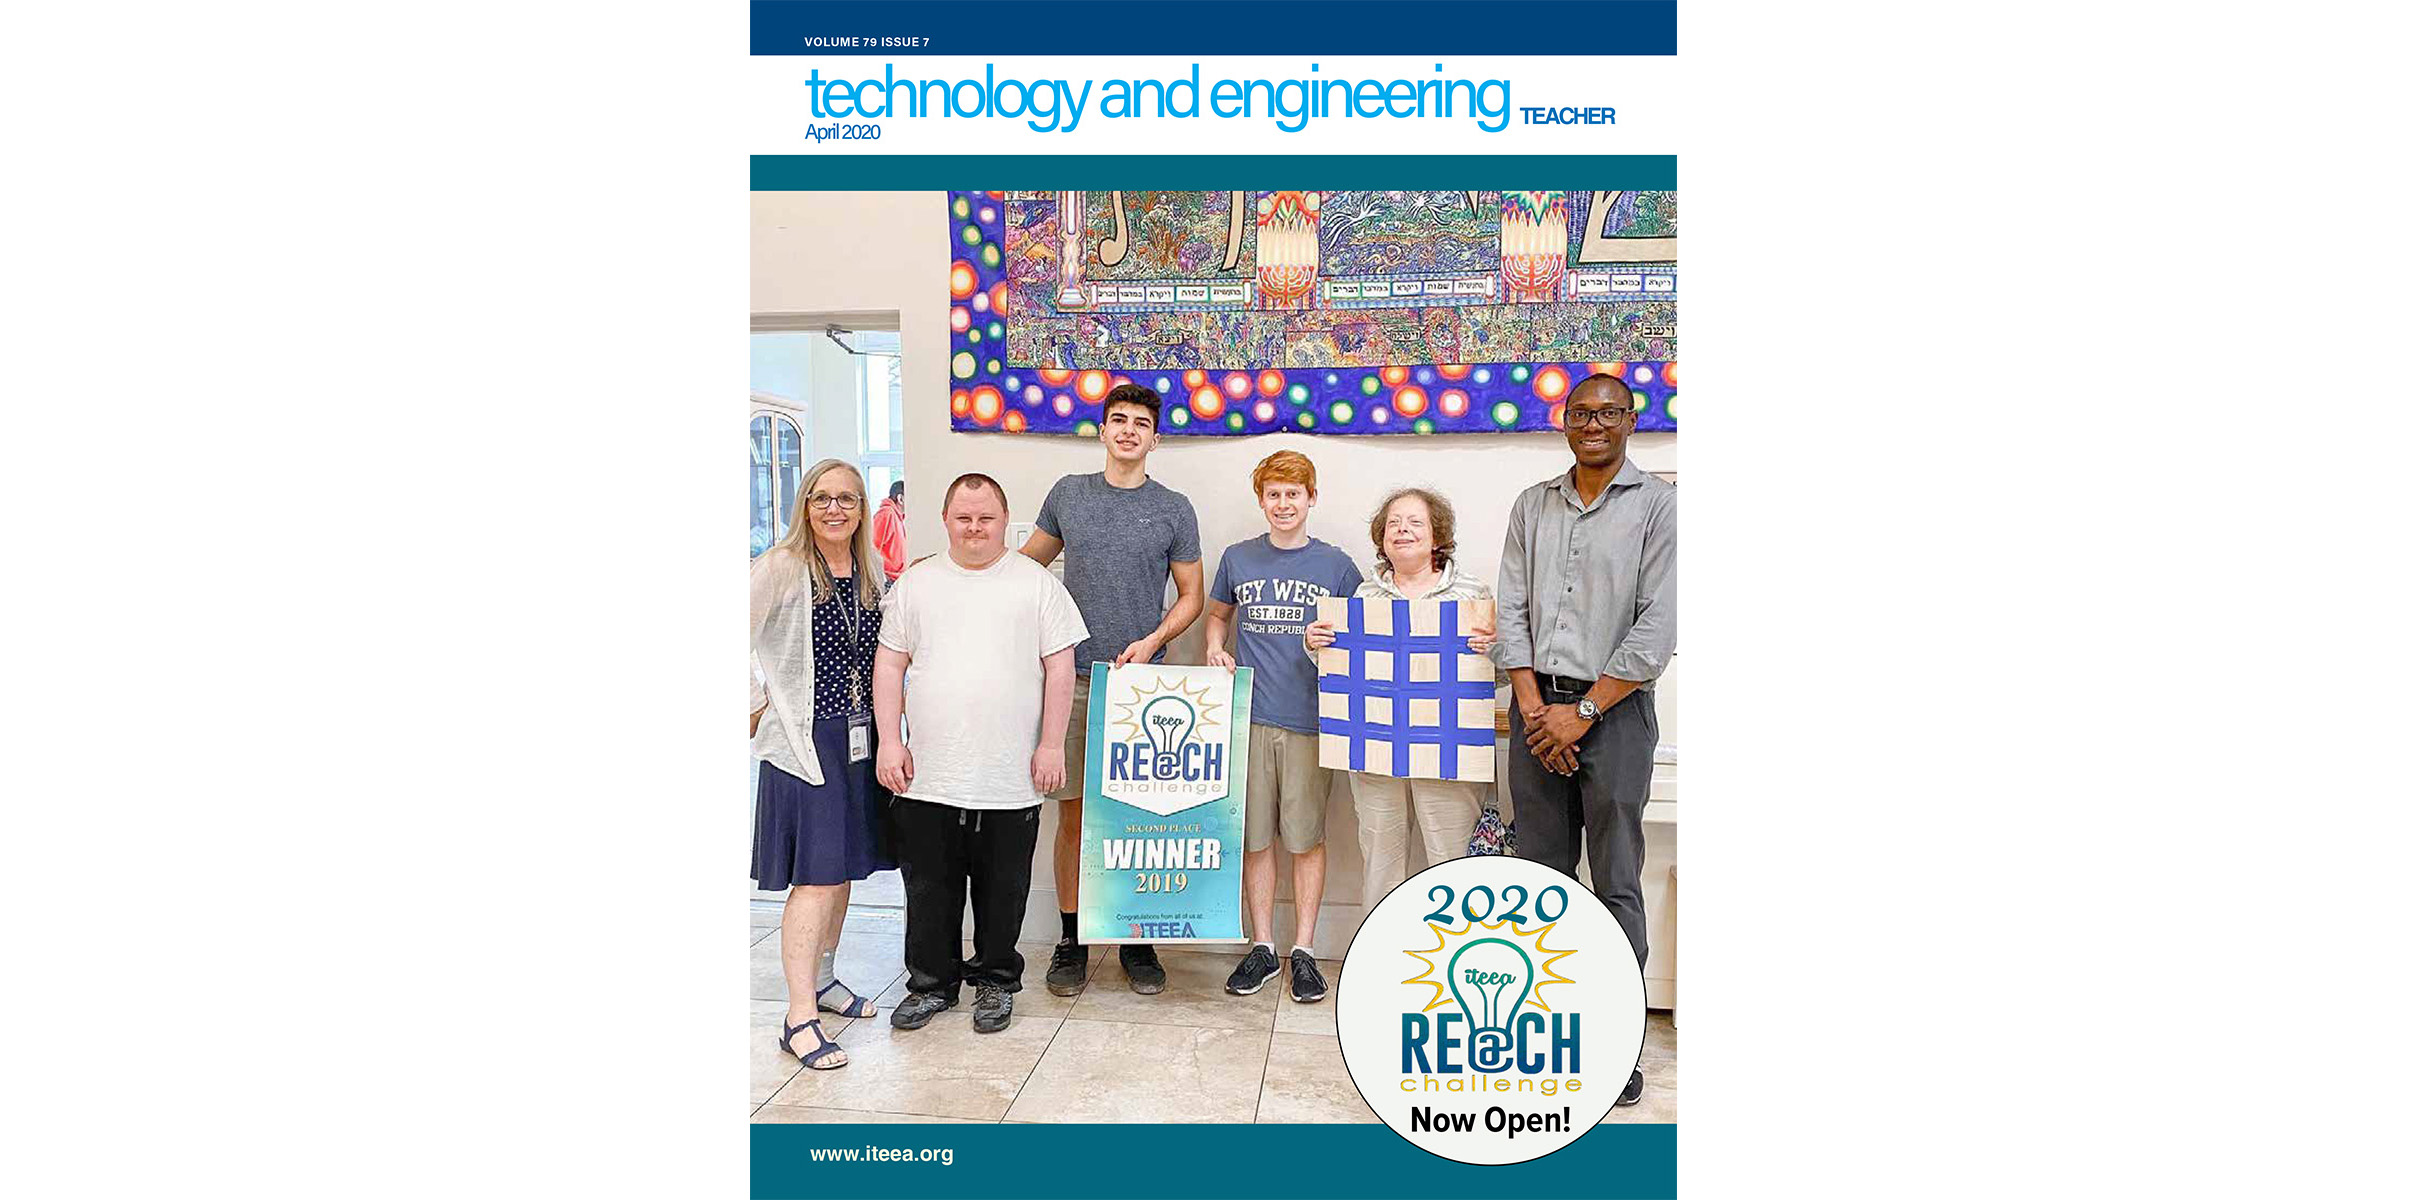 Technology and Engineering Teacher - April 2020 - OPEN TO ALL